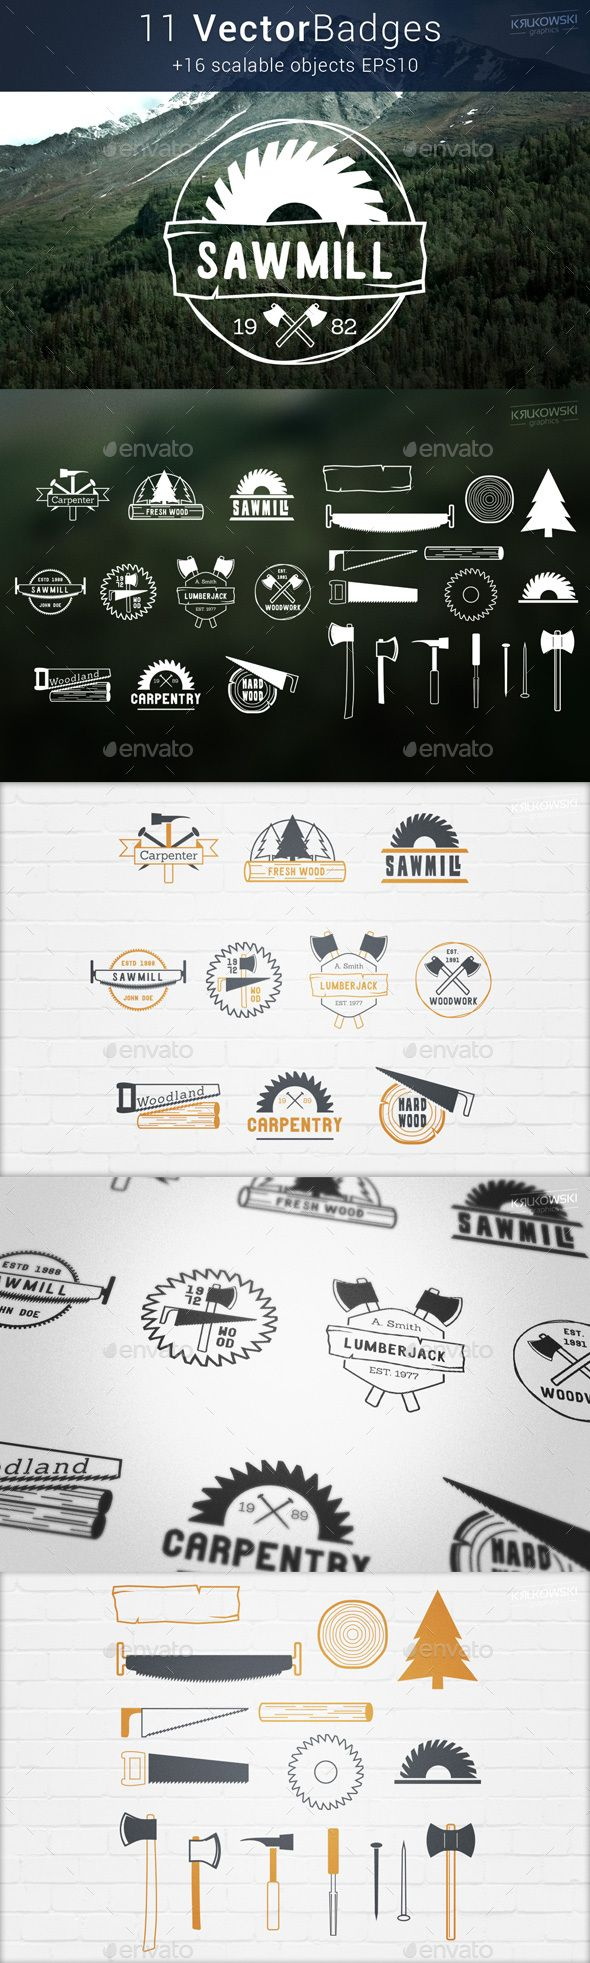 Carpentry Wood Badges Logos Carpentry Wood Badges are premade insignia style logos perfect for carpenter, lumberjack and wood related design. You can use it in both personal and commercial projects for yourself, your company or your customer. All texts are editable only free fonts were used (links to fonts included).  You will get: 11 Vector Badges Logos Additional scalable elements Vector EPS and AI files Raster PSD, PNG and JPG files Color and Monochrome versions